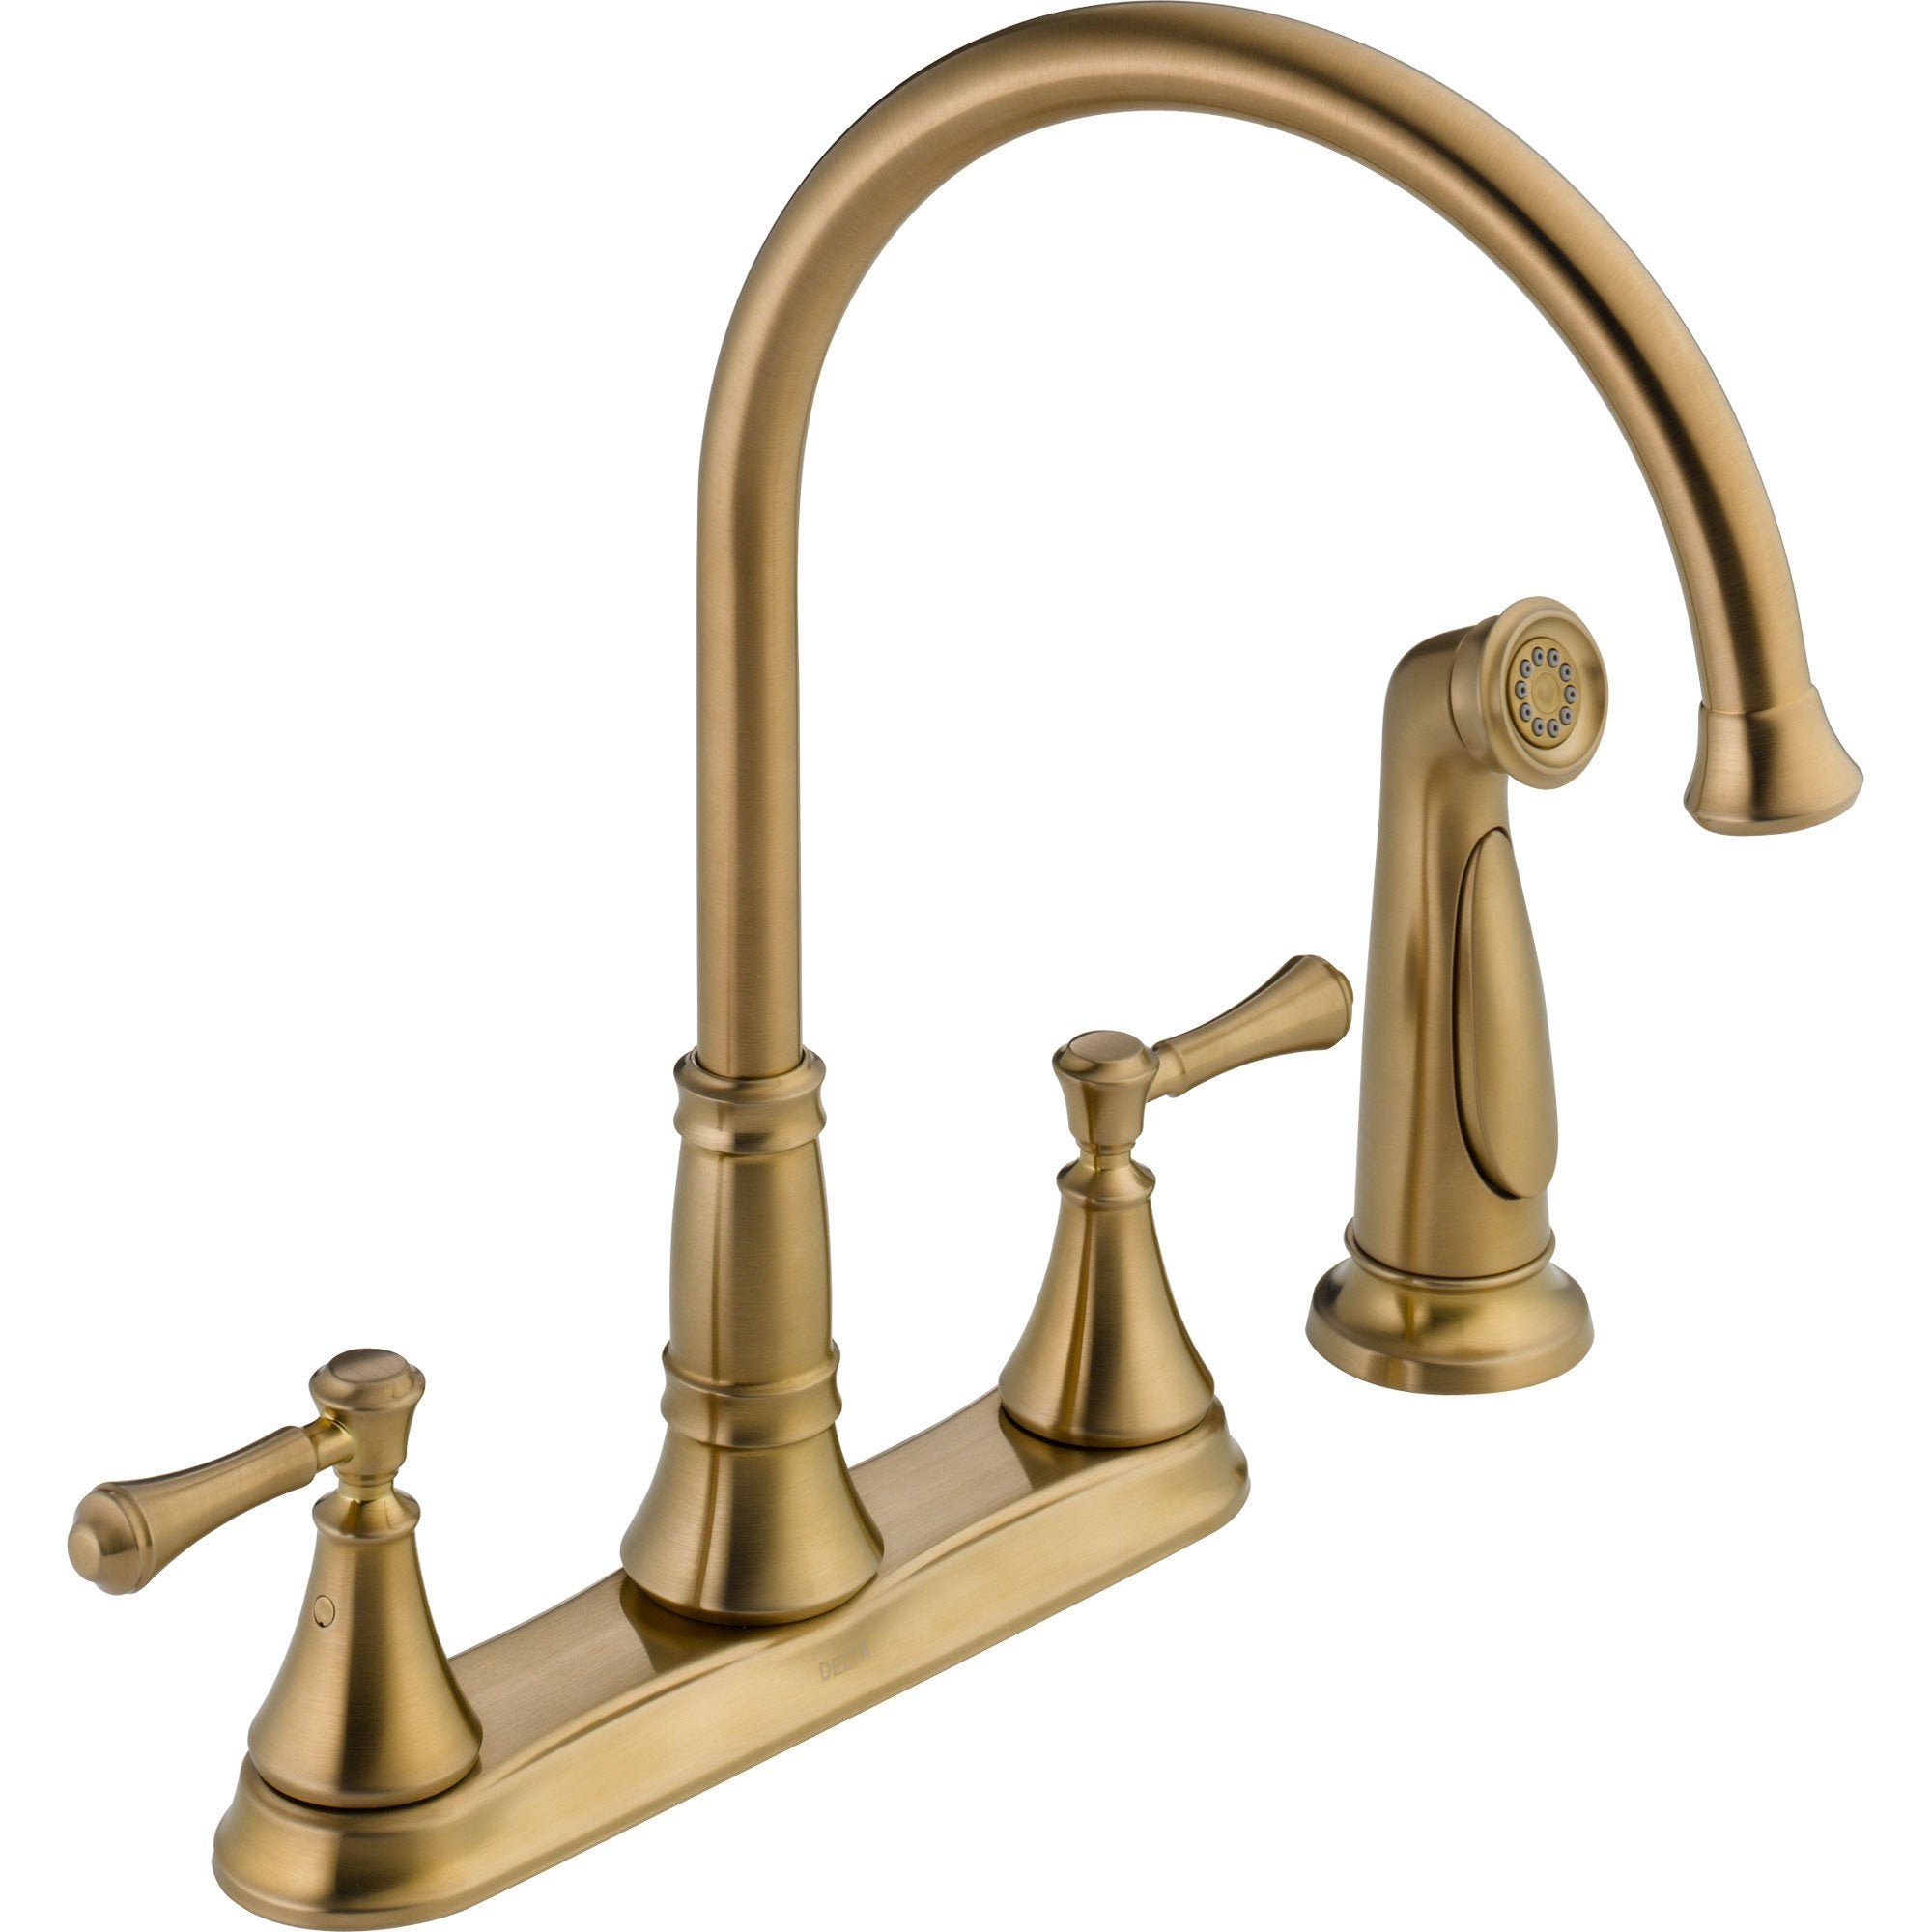 Delta Cassidy Gooseneck Champagne Bronze Kitchen Faucet with Side